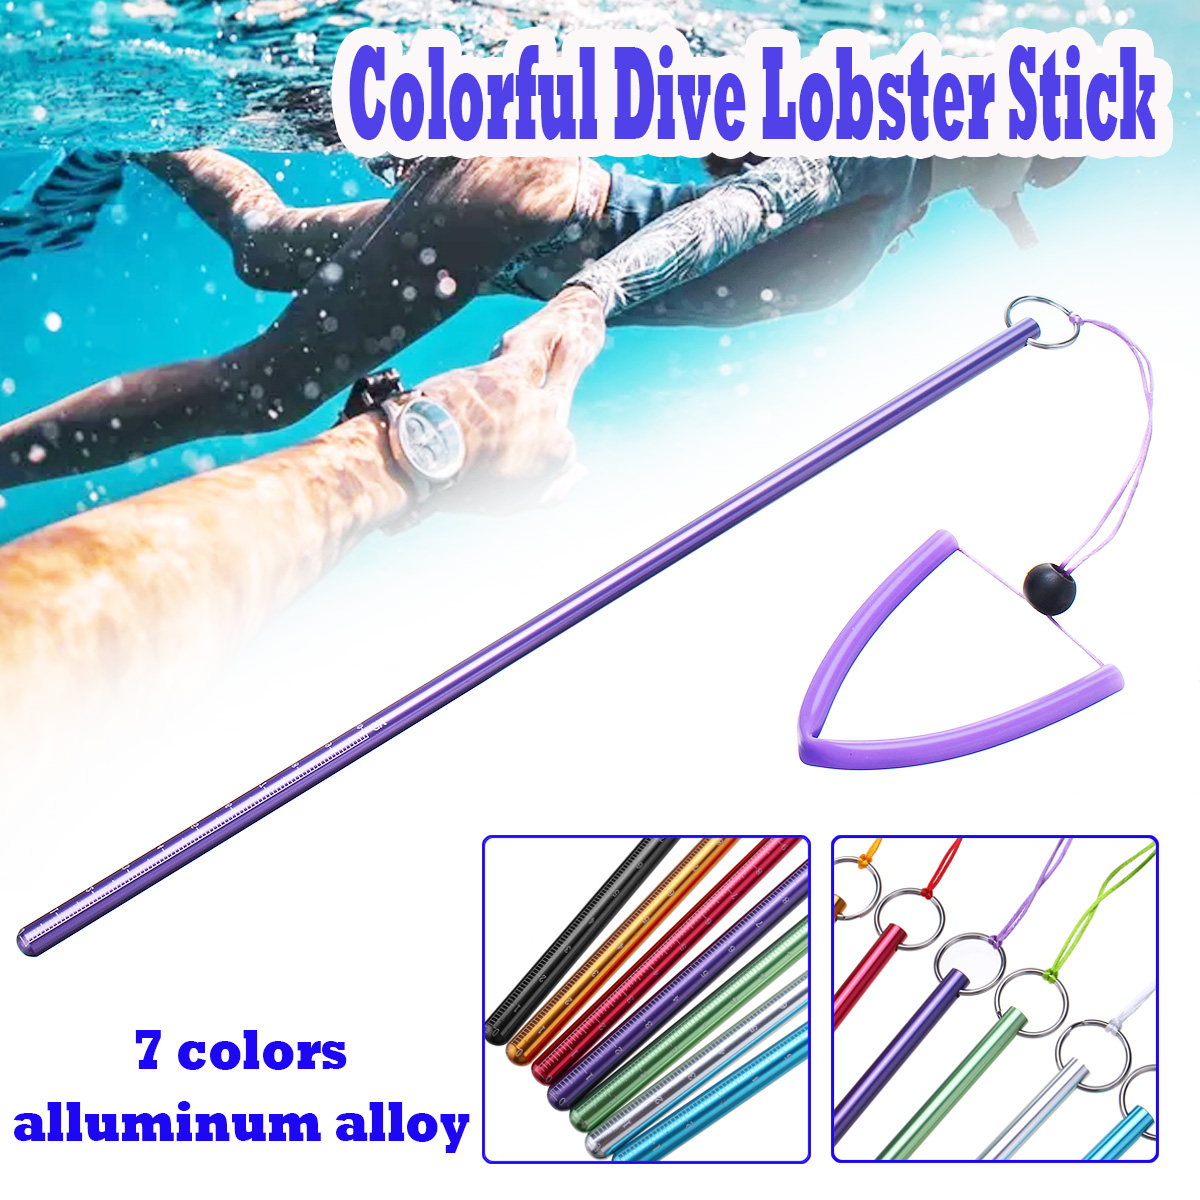 Diving Colorful Aluminum Alloy Dive Lobster Stick Pointer